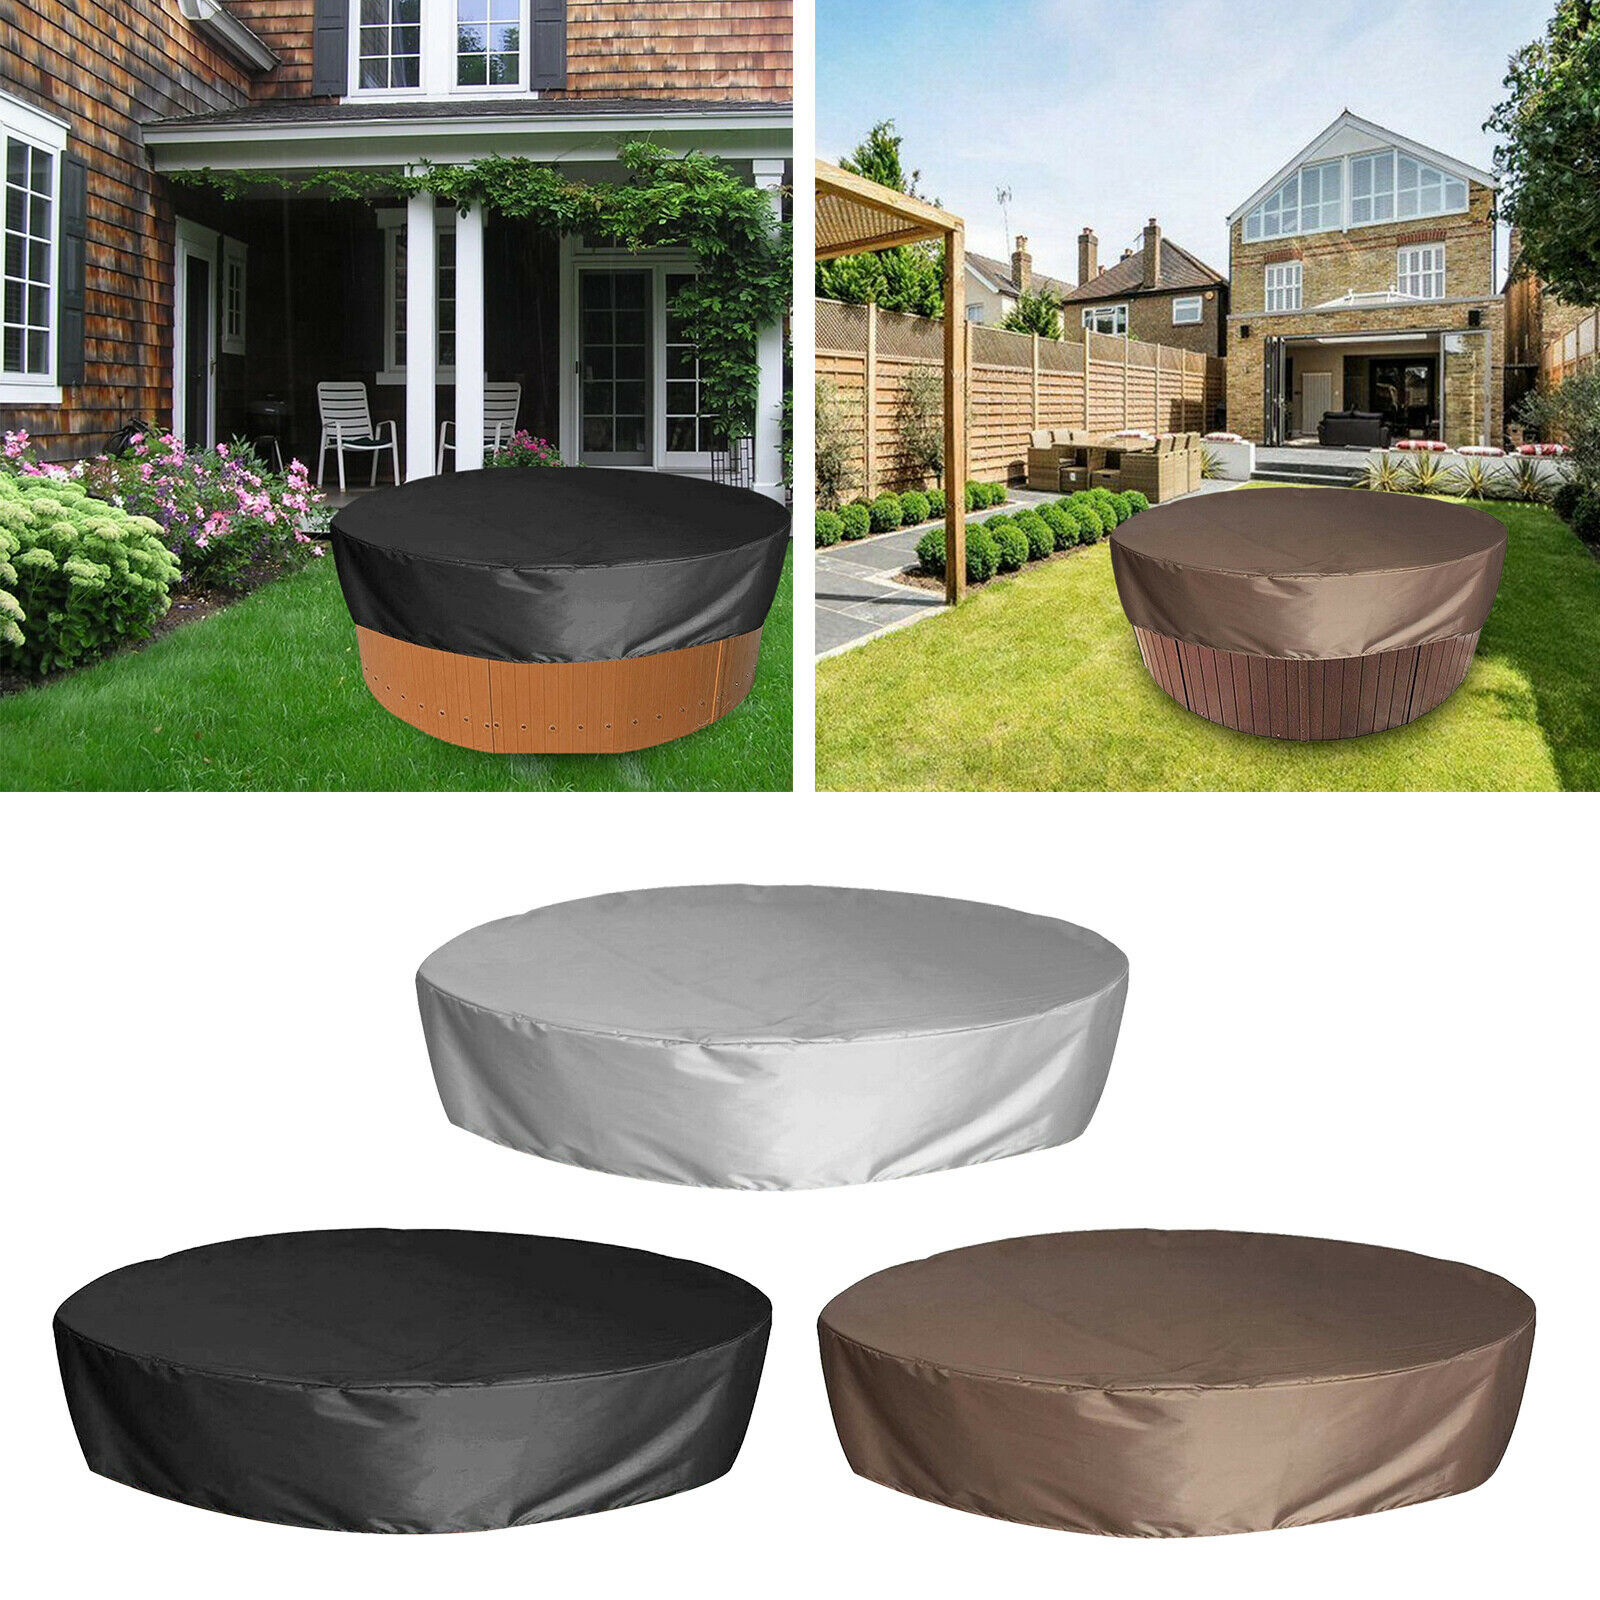 190cm Round Pool Cover for Garden Outdoor Hot Tub Pond Above Ground Pool